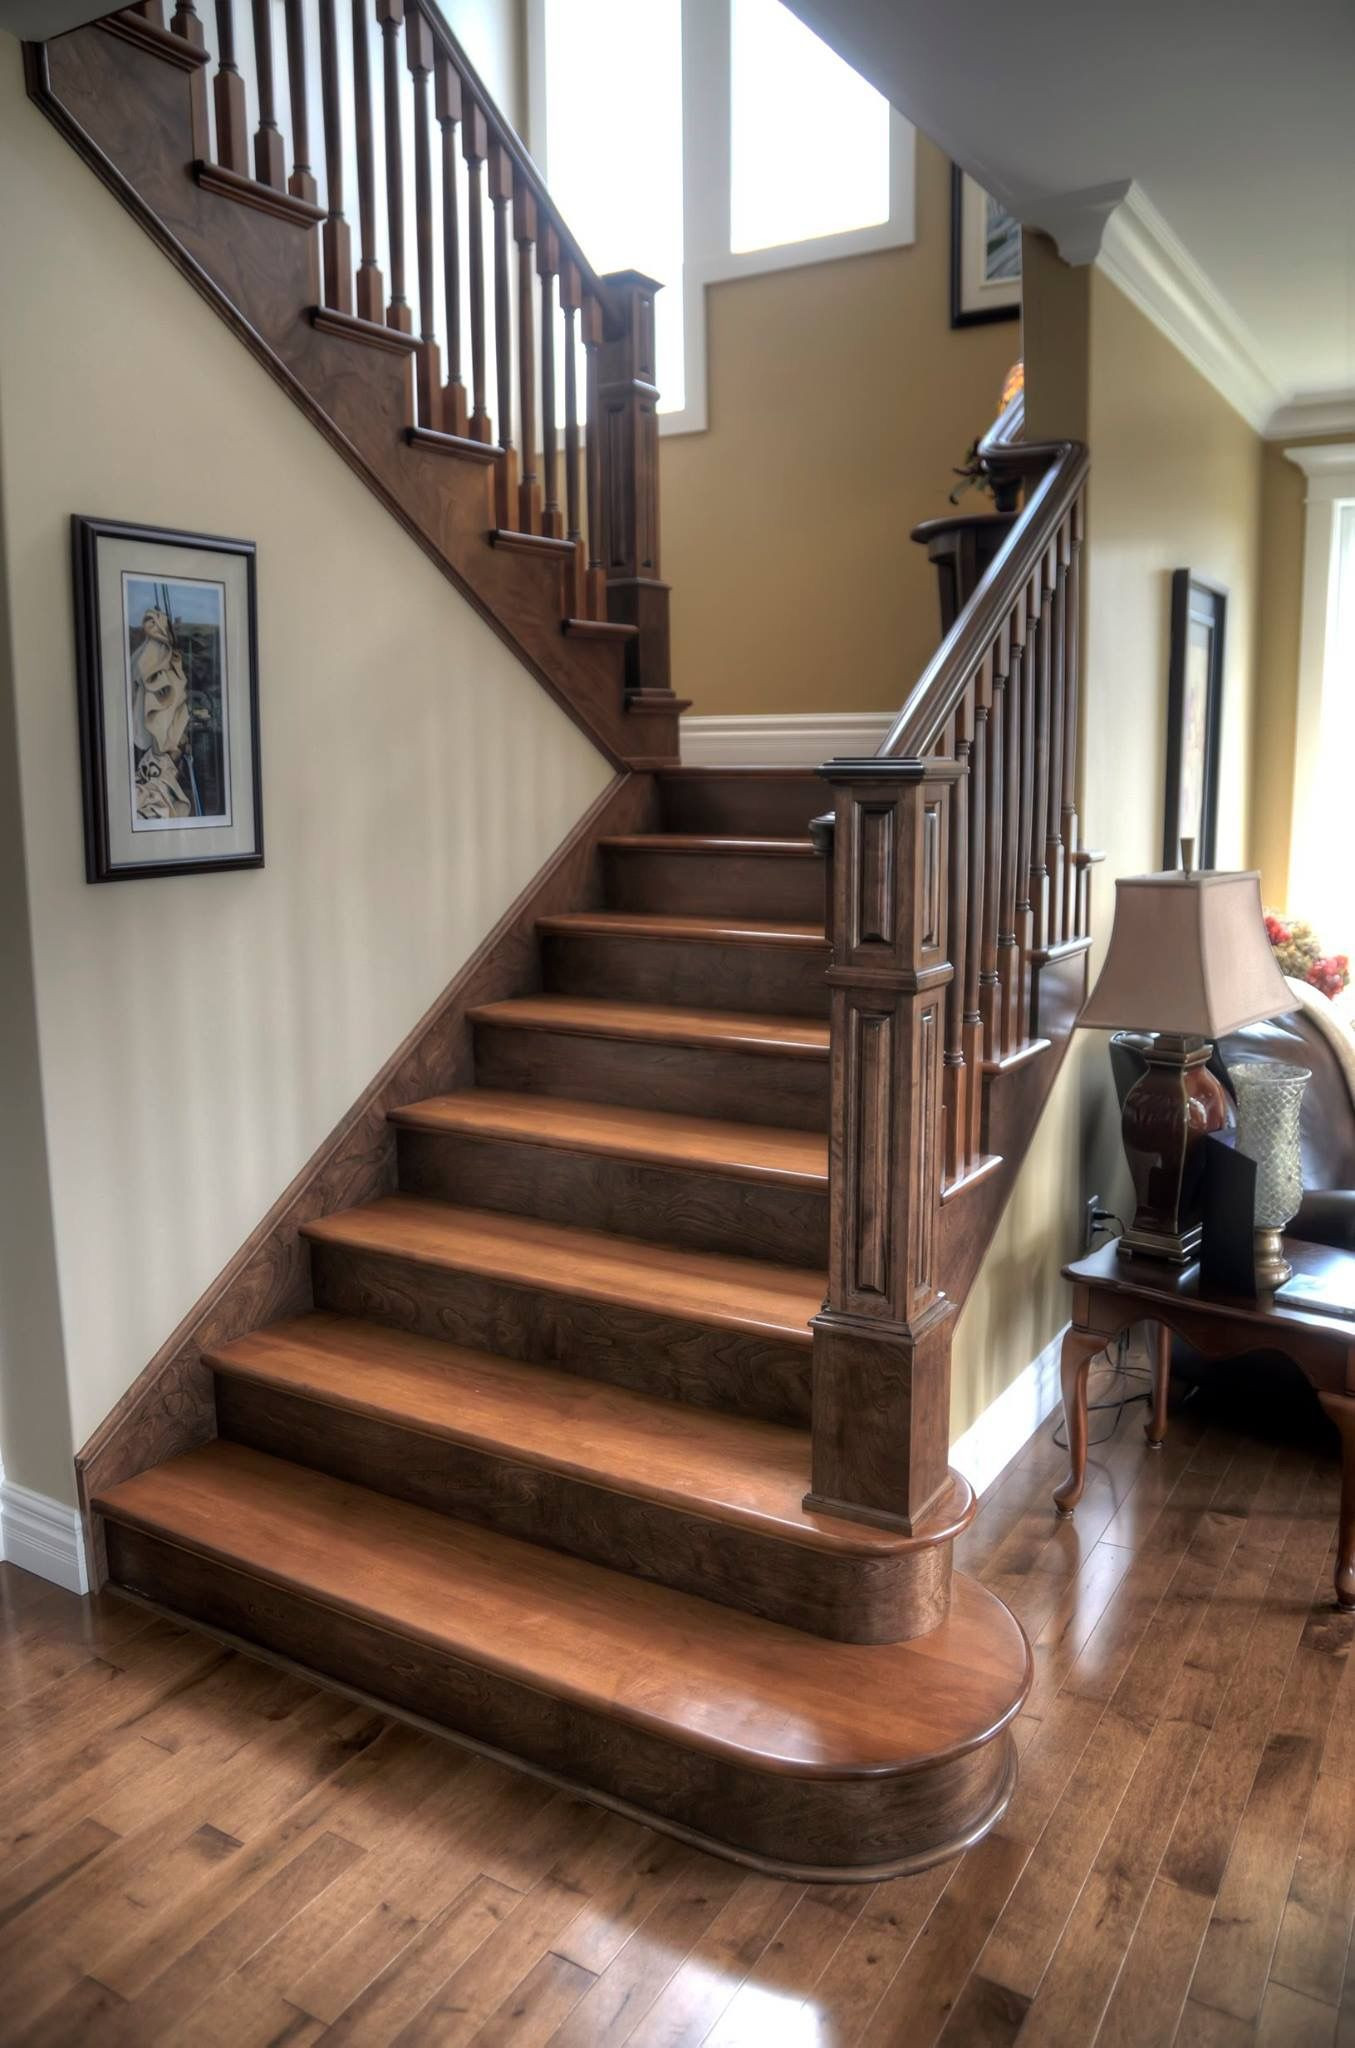 Best ideas about The Staircase 2 . Save or Pin Two tone staircase with custom posts railing stairs Now.